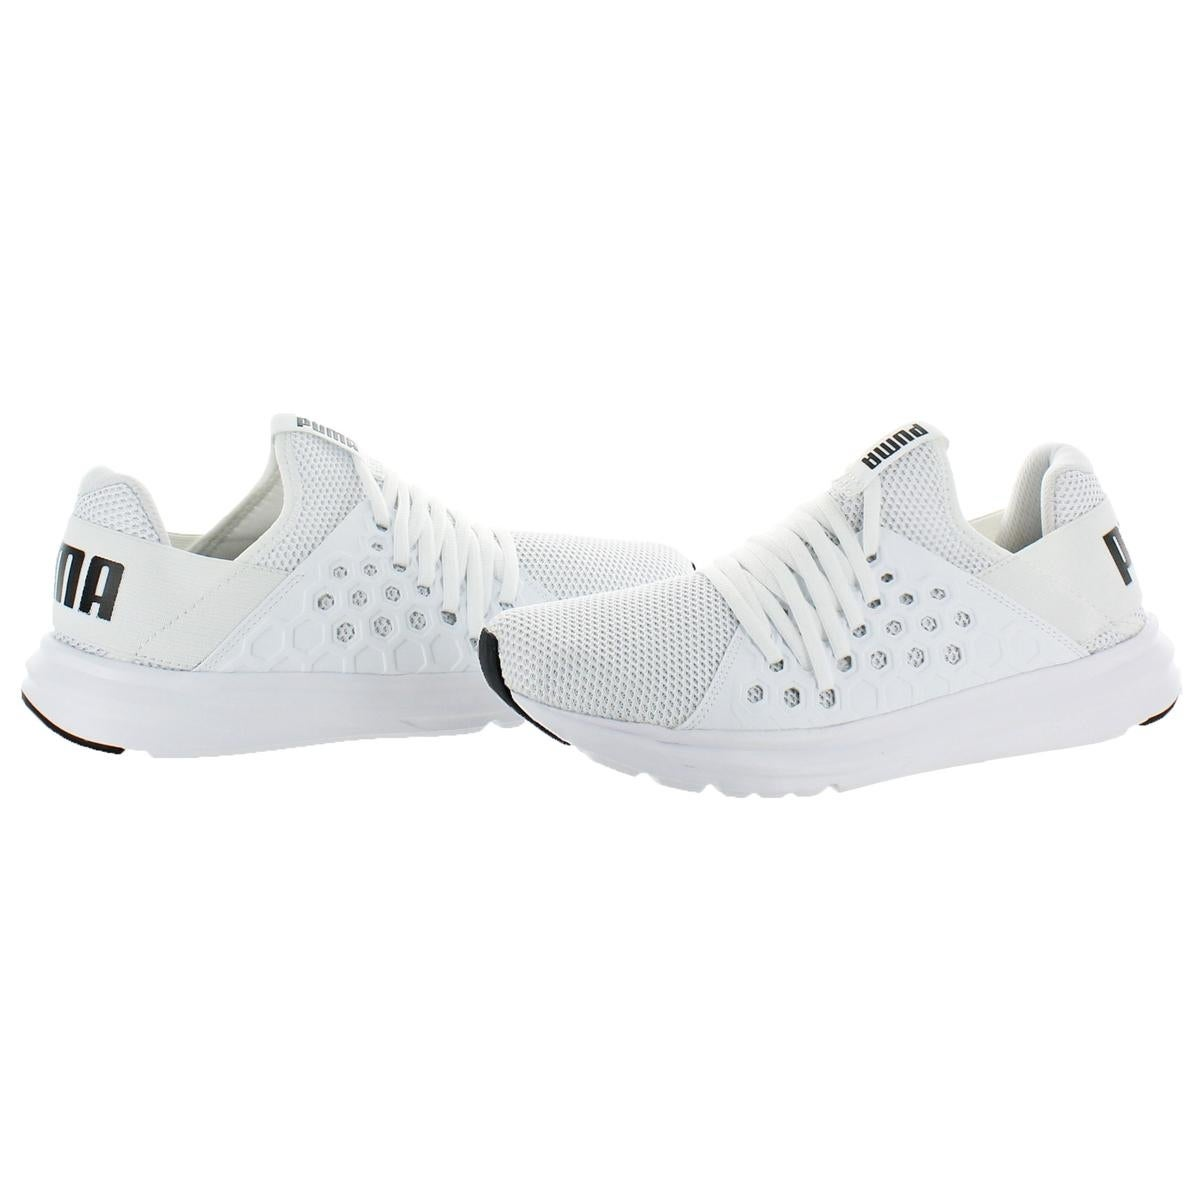 4fb16b454a7852 Shop Puma Mens Enzo NF Fashion Sneakers SoftFoam Running - Free Shipping On  Orders Over  45 - Overstock - 23447199